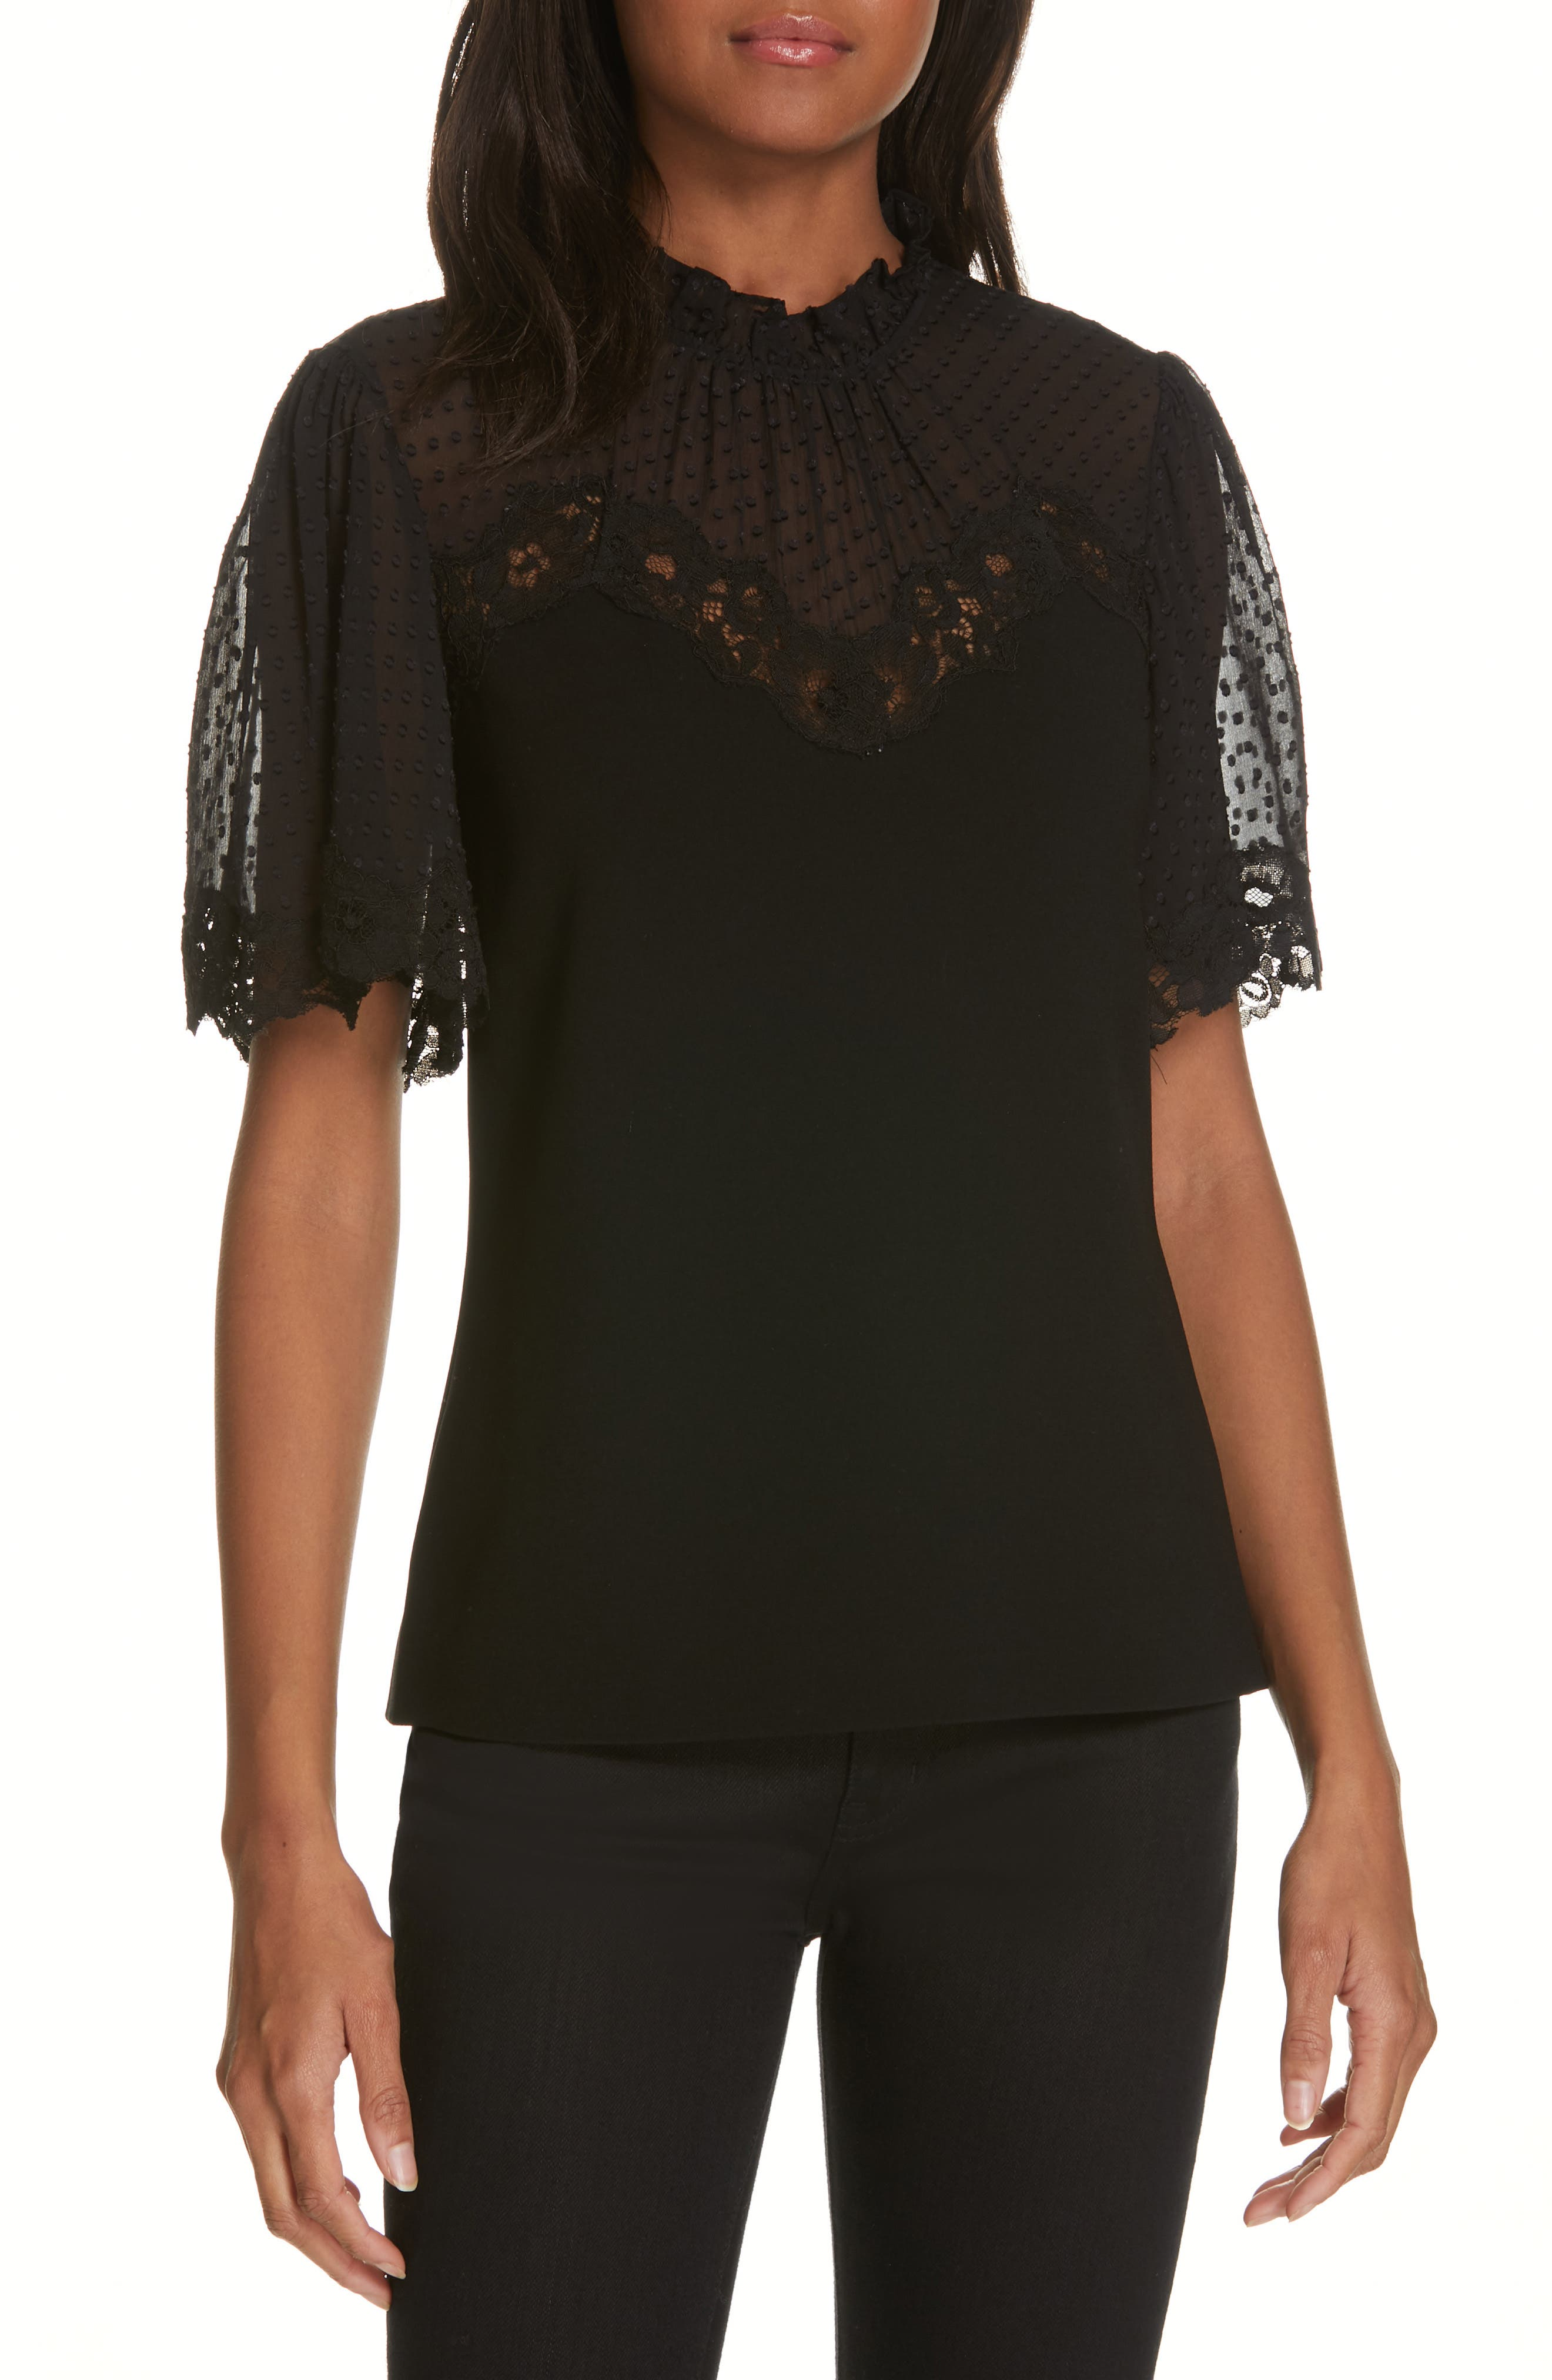 REBECCA TAYLOR Short-Sleeve Crepe High-Neck Lace Top in Black